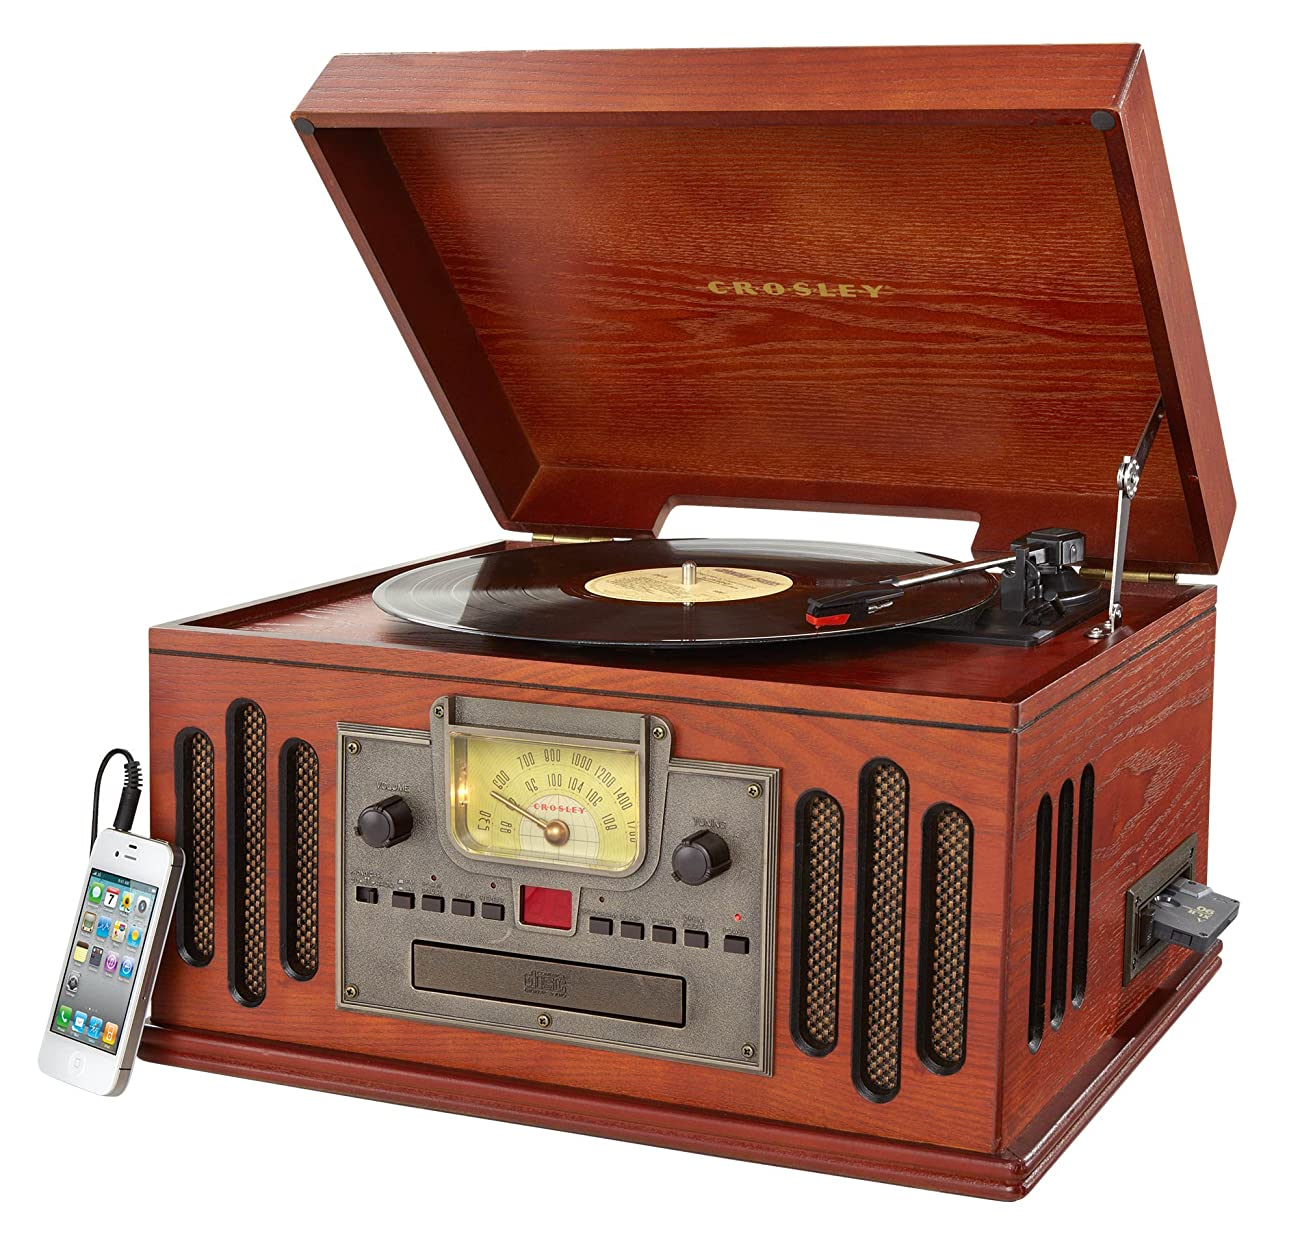 Crosley CR704C-PA Musician Turntable with Radio, CD Player, Cassette and Aux-In, Paprika 1